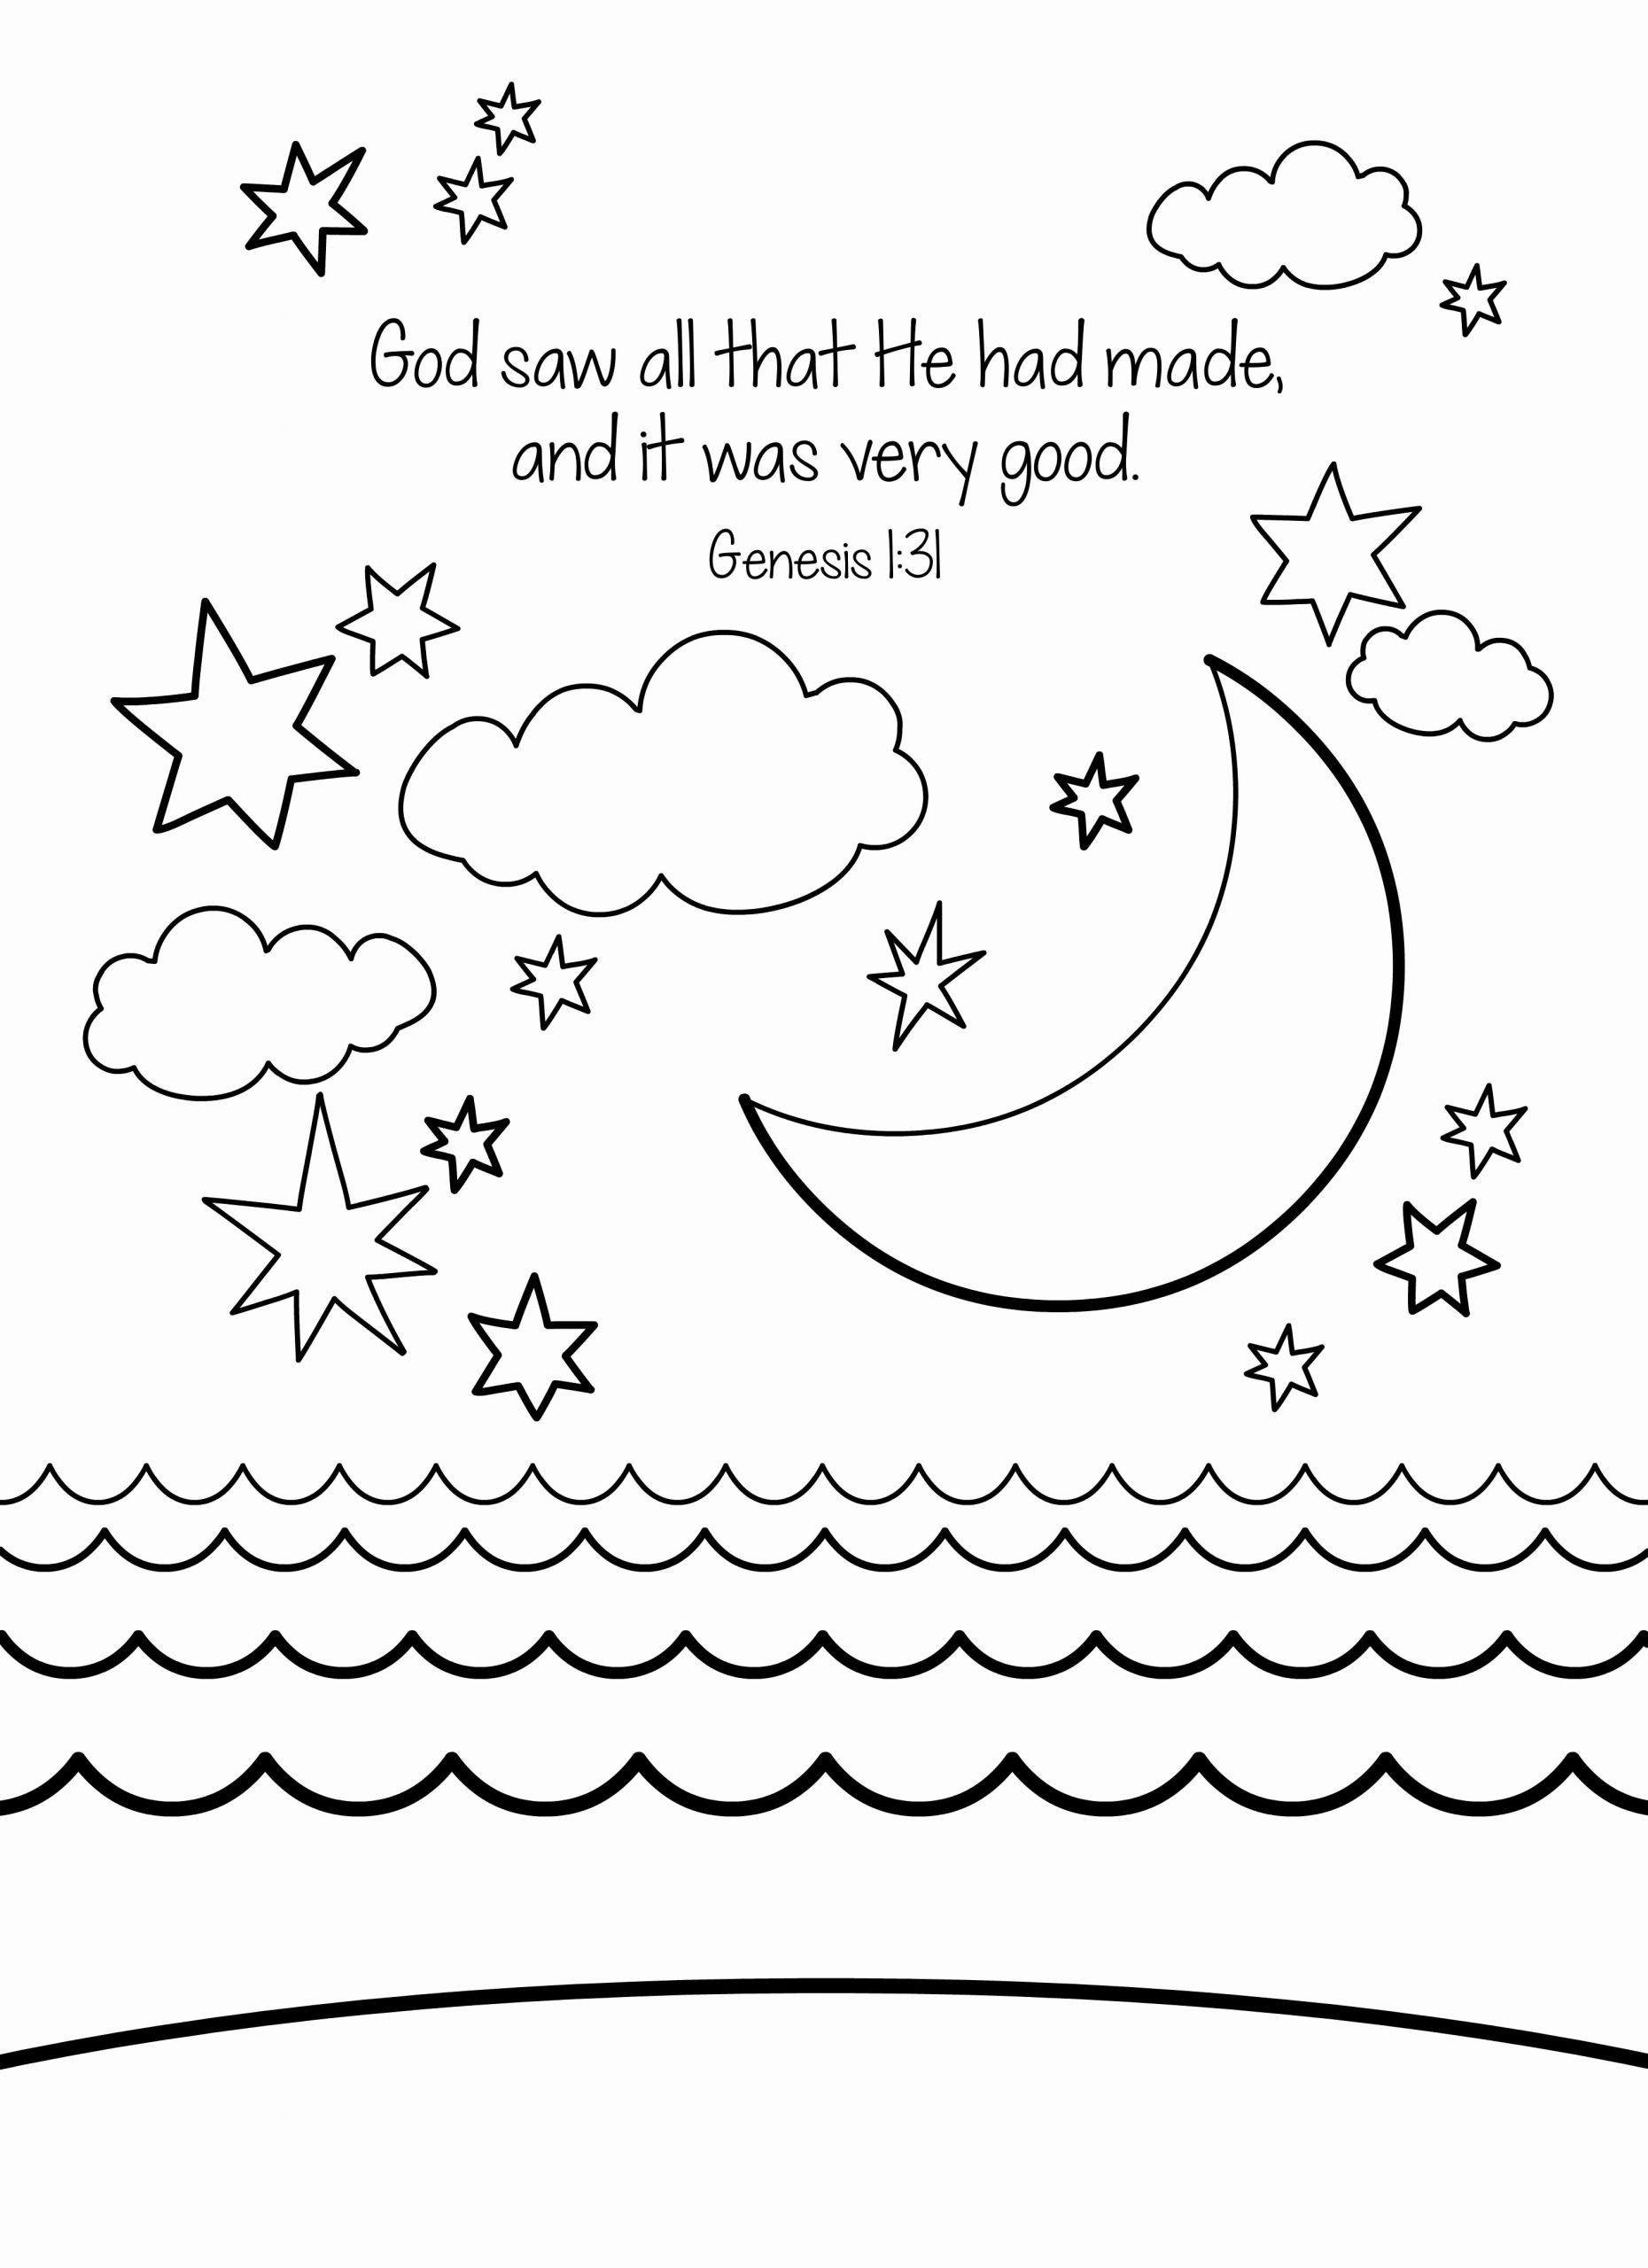 Preschool Bible Coloring Pages Awesome Free Bible Coloring Page